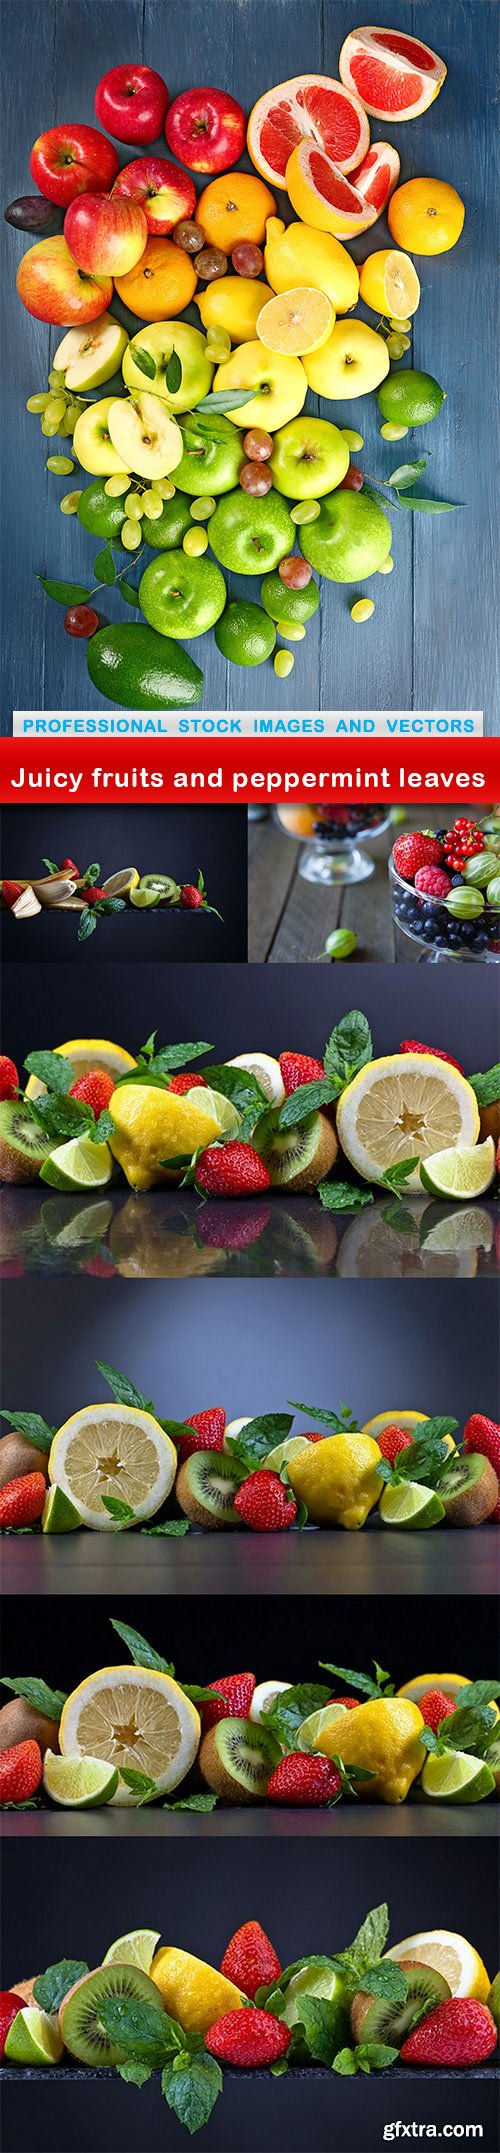 Juicy fruits and peppermint leaves - 7 UHQ JPEG